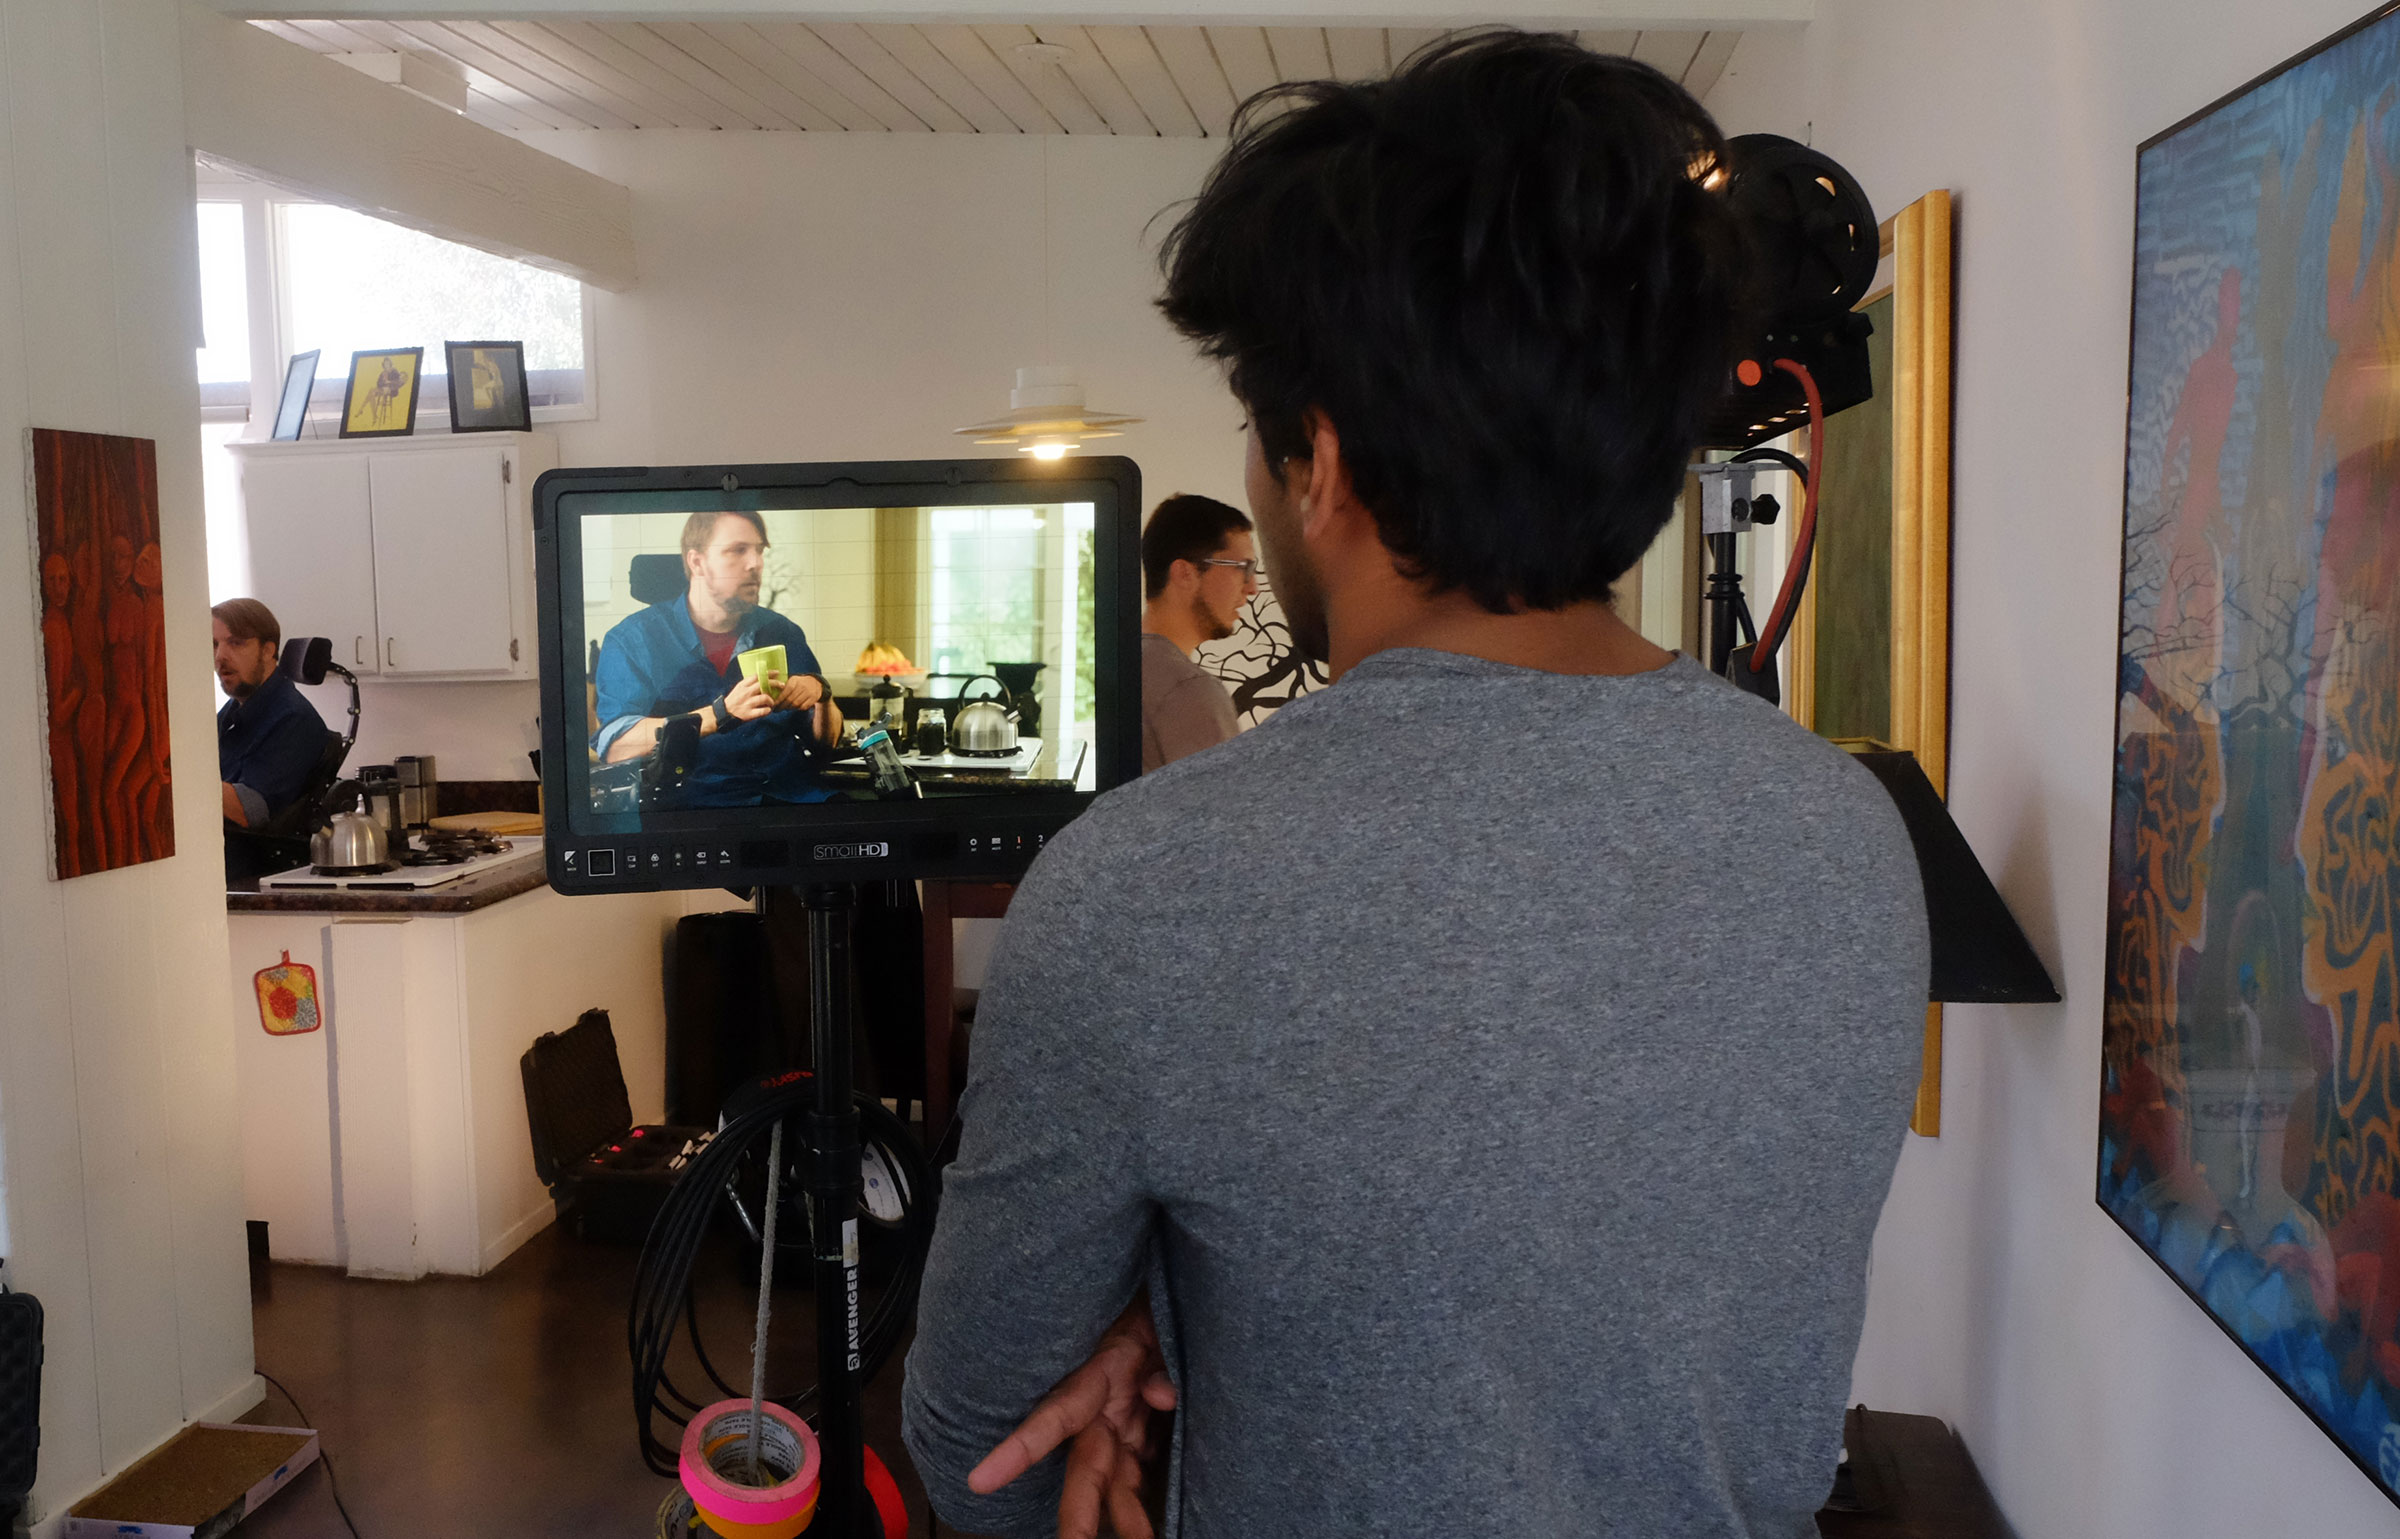 Cameraman watches a film scene on a monitor with the actors in the background